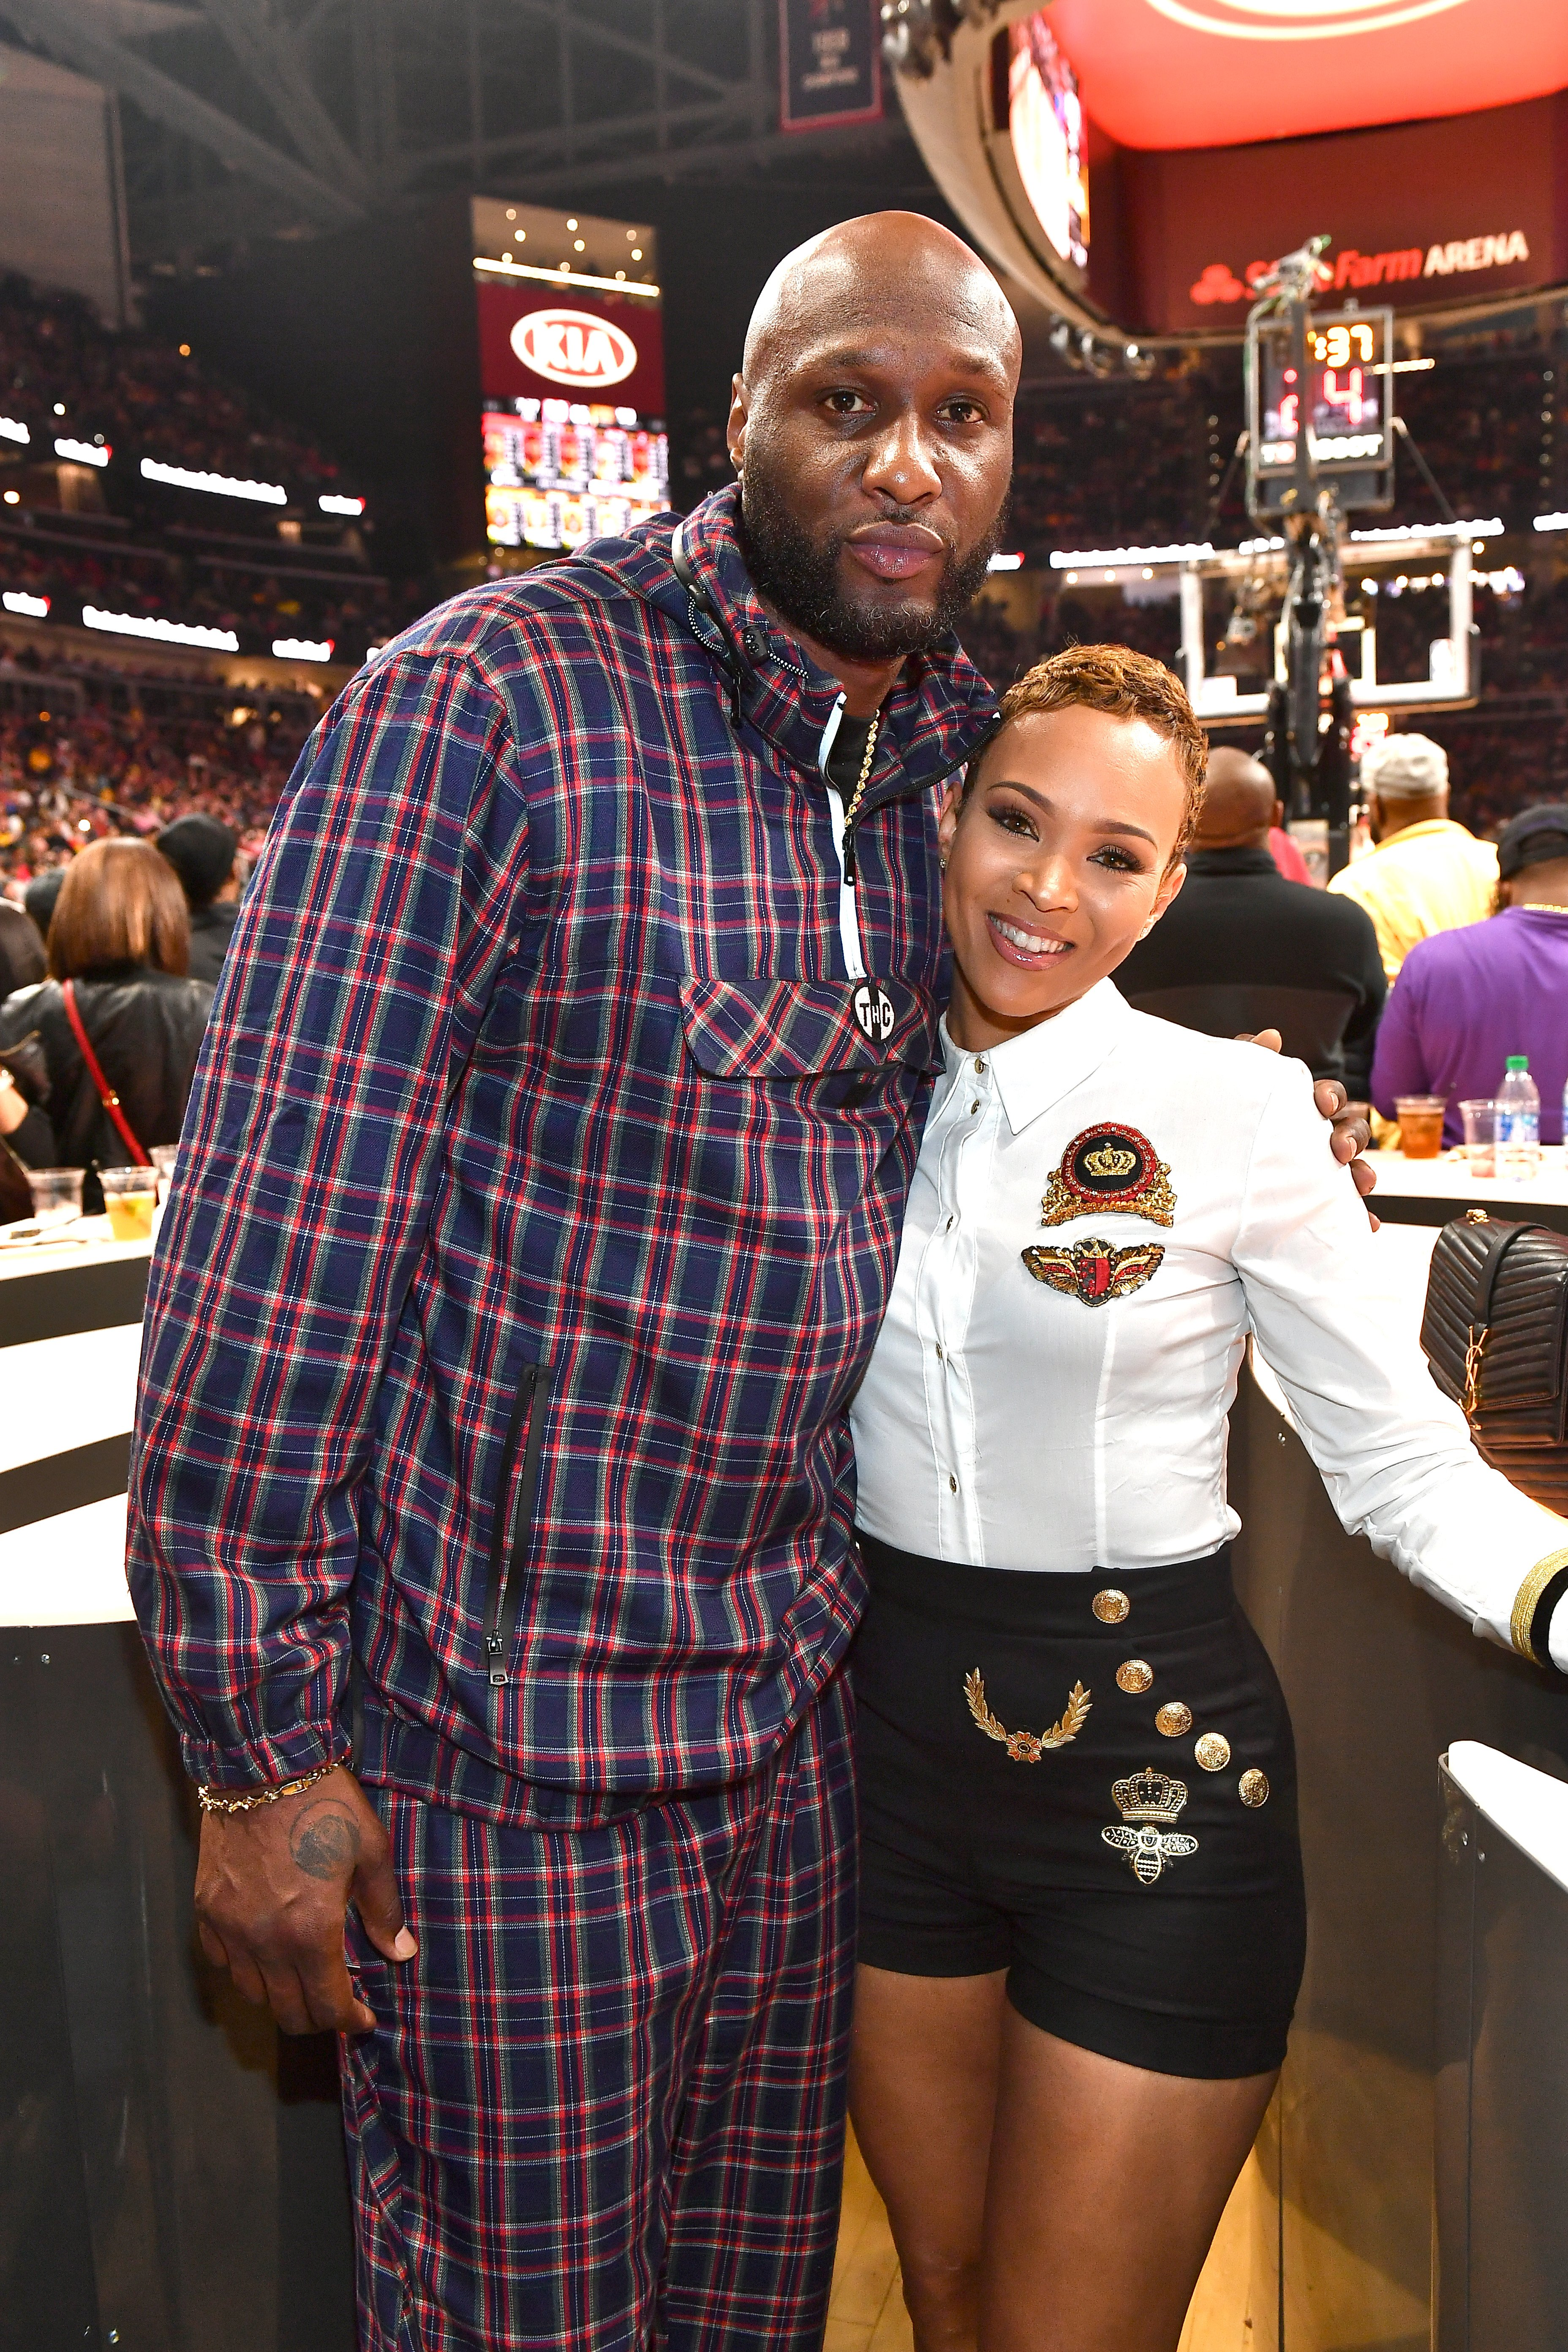 Lamar Odom and Sabrina Parr attend Los Angeles Lakers vs Atlanta Hawks at State Farm Arena,2019| Photo: Getty Images